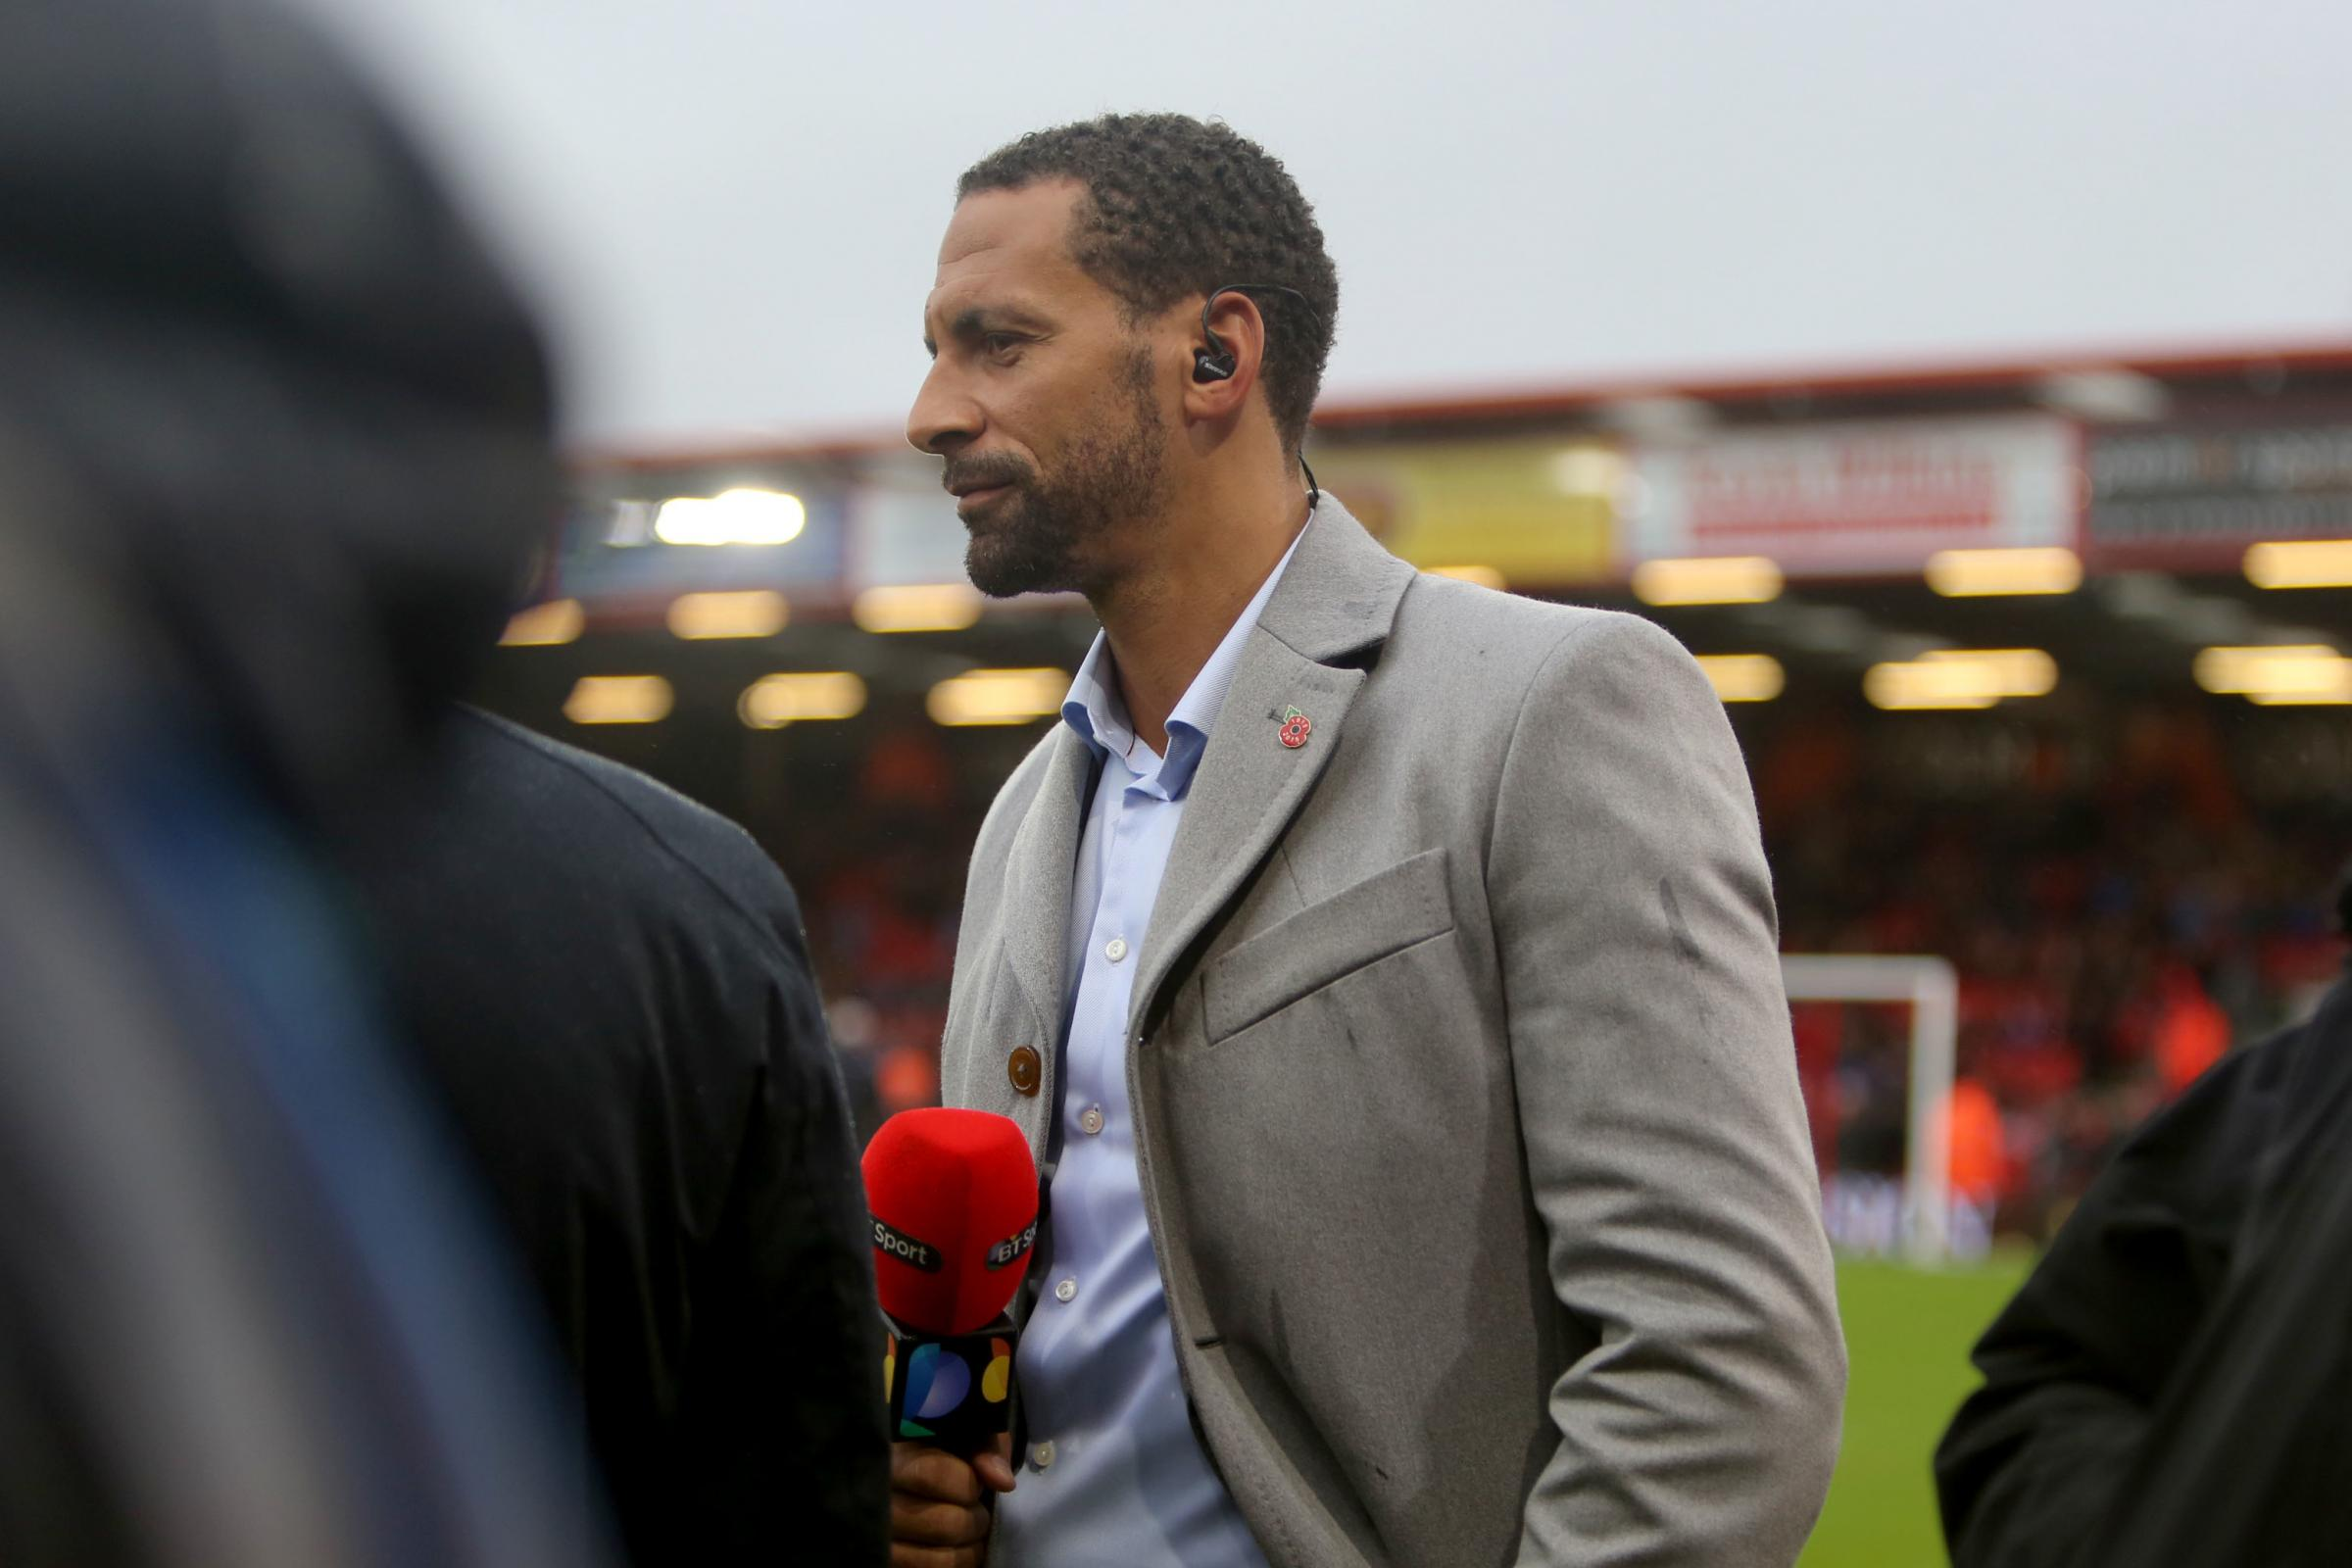 Rio Ferdinand believes Sam Surridge should have come on earlier against Arsenal after Dominic Solanke did 'absolute zero'